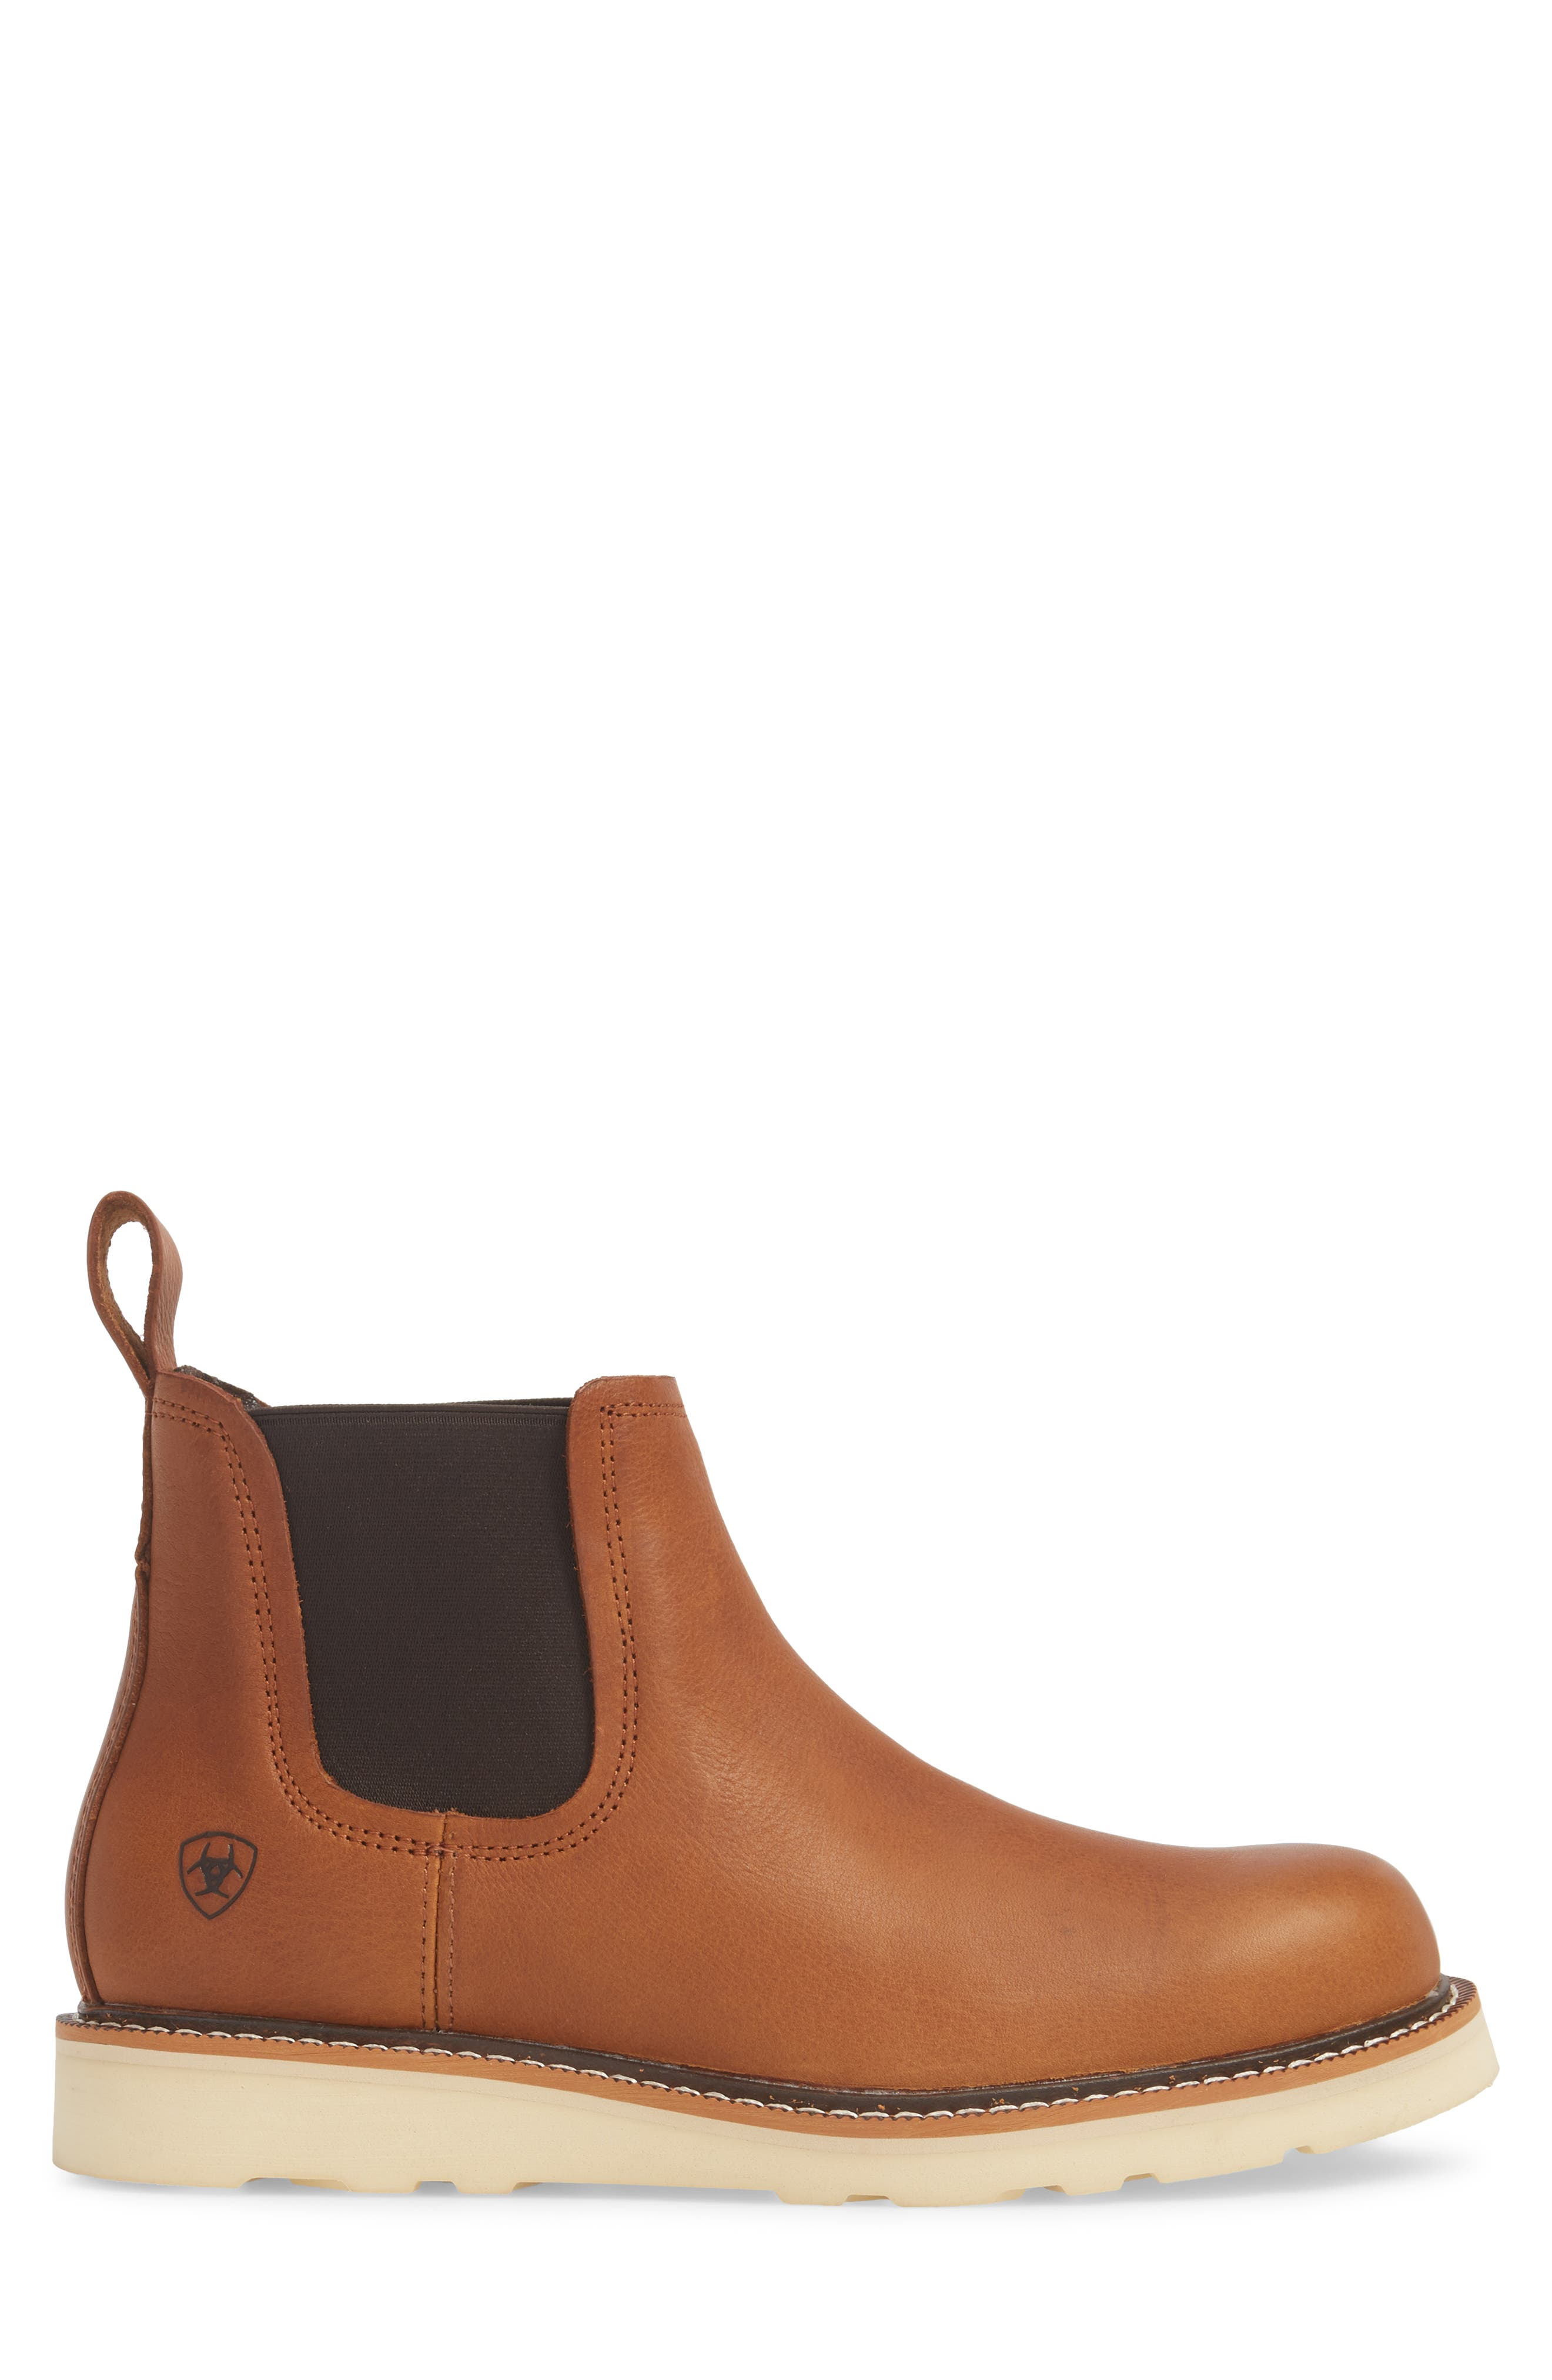 ARIAT, Rambler Recon Mid Chelsea Boot, Alternate thumbnail 3, color, GOLDEN GRIZZLY